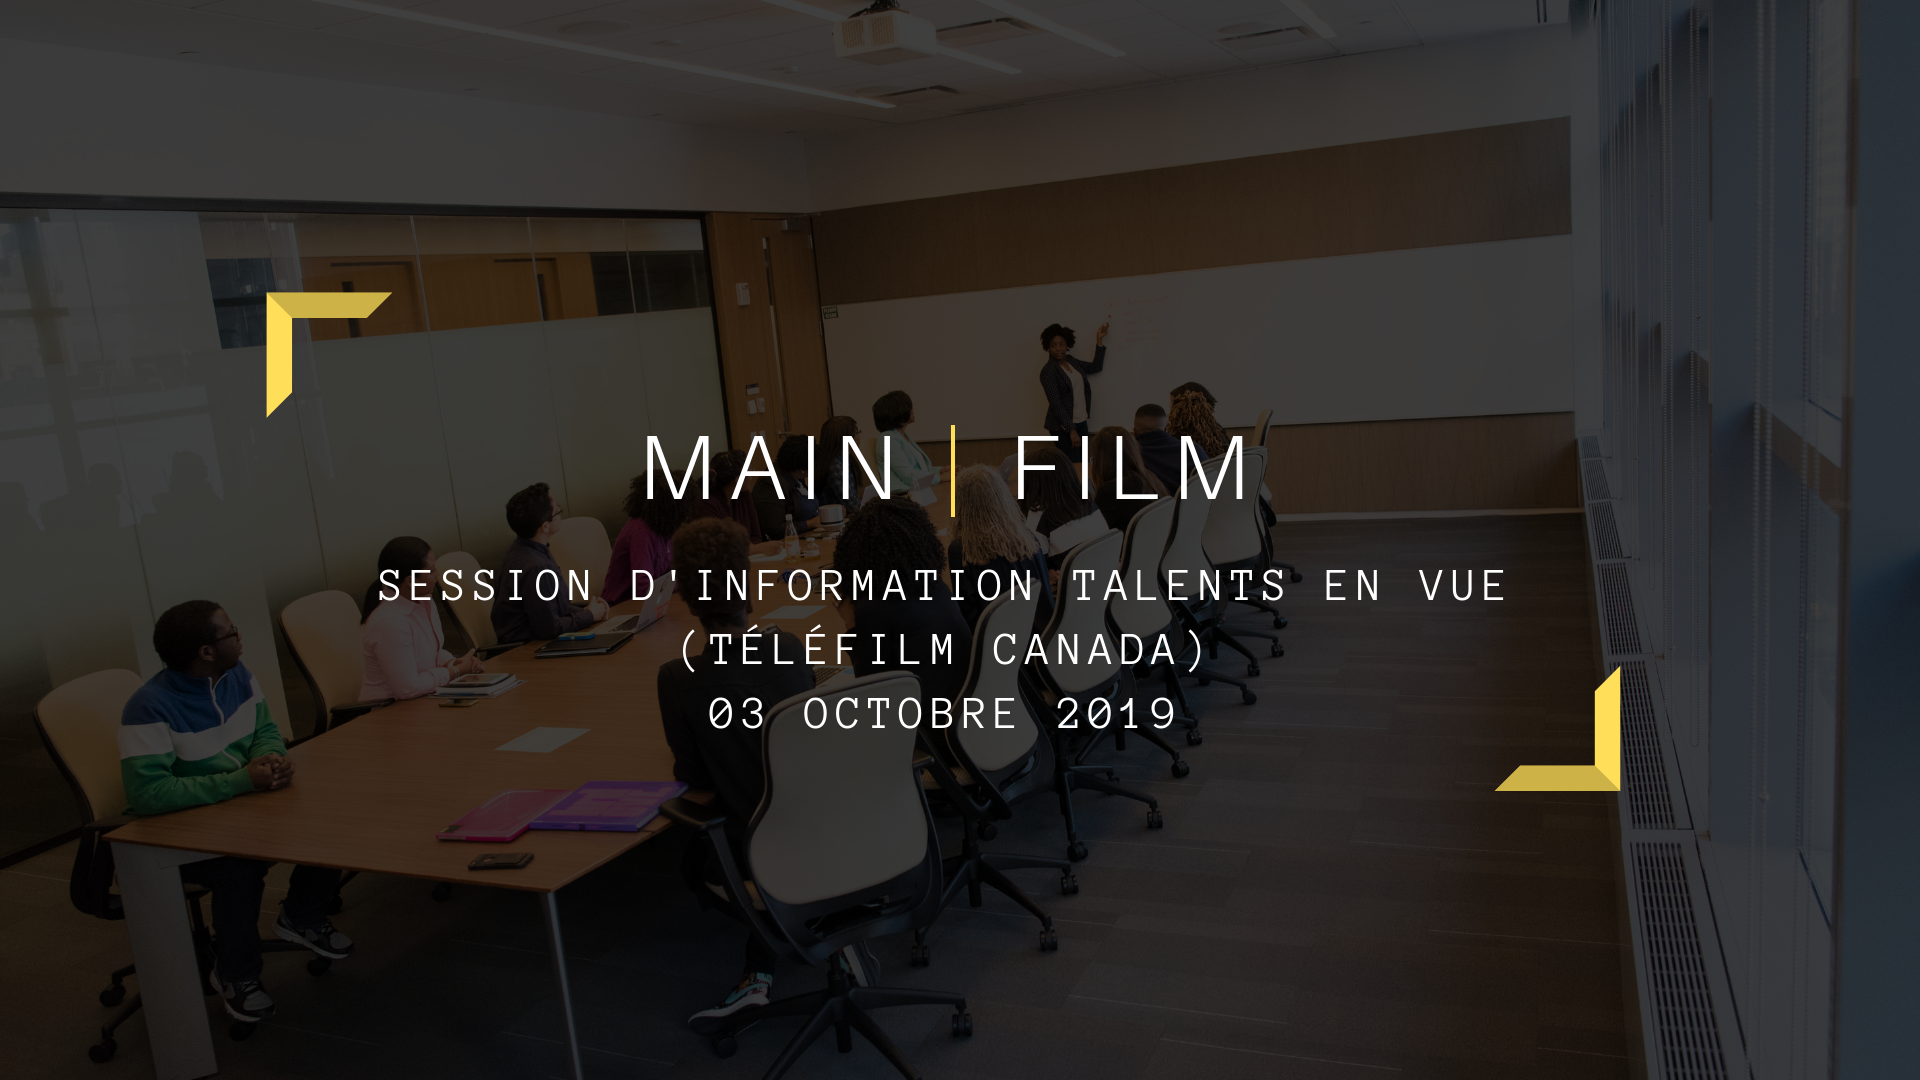 SESSION D'INFORMATION TALENTS EN VUE - TÉLÉFILM CANADA